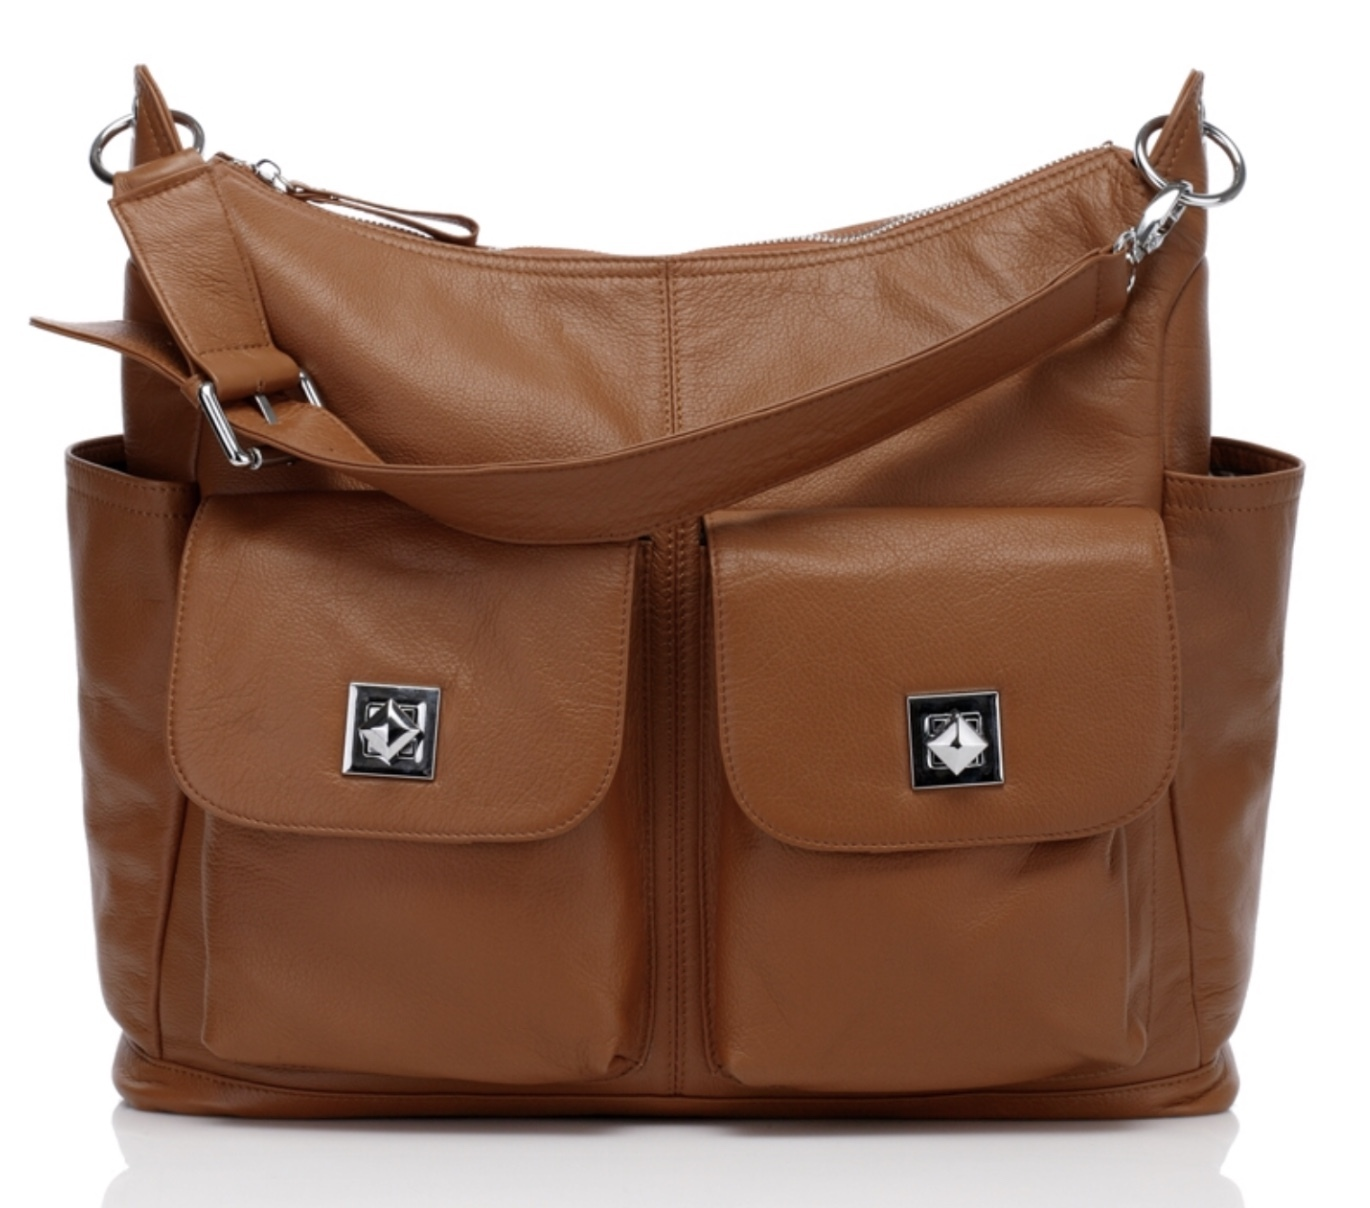 New Brown Pebbled Italian Leather Diaper Nappy Bag Mommy Bag Tote